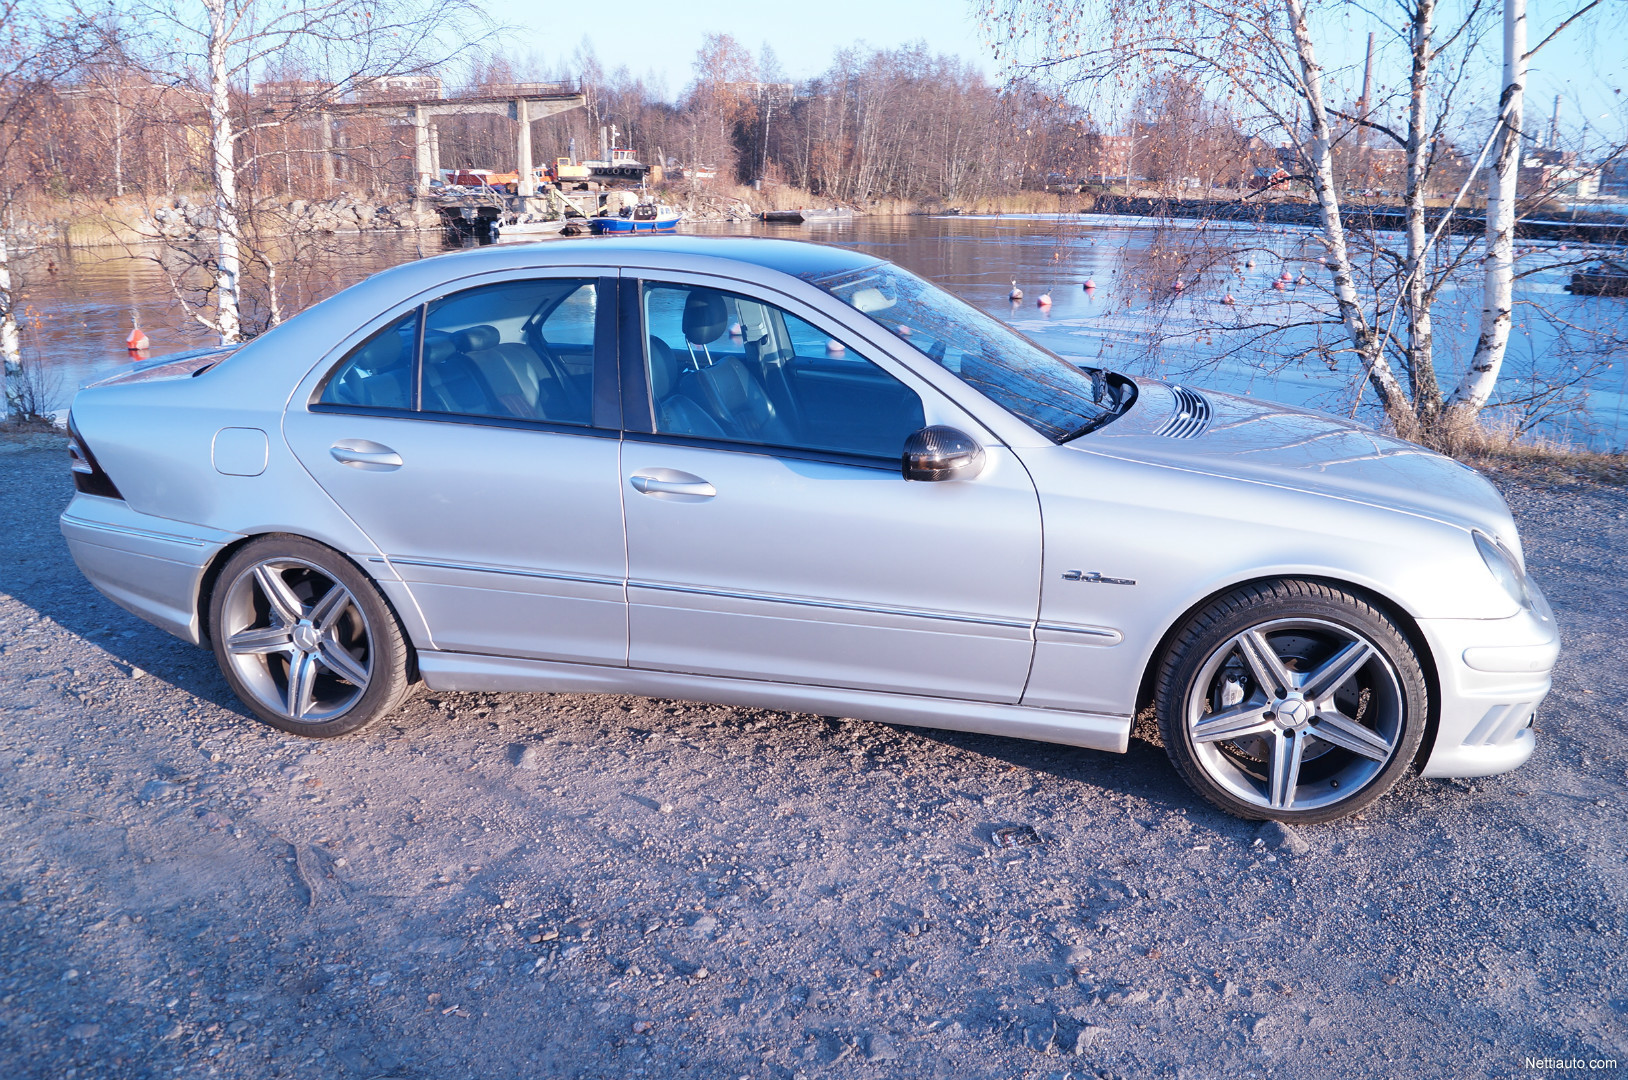 mercedes benz c 32 amg harvinainen c32 amg kleeman optiikalla sedan 2002 used vehicle nettiauto. Black Bedroom Furniture Sets. Home Design Ideas